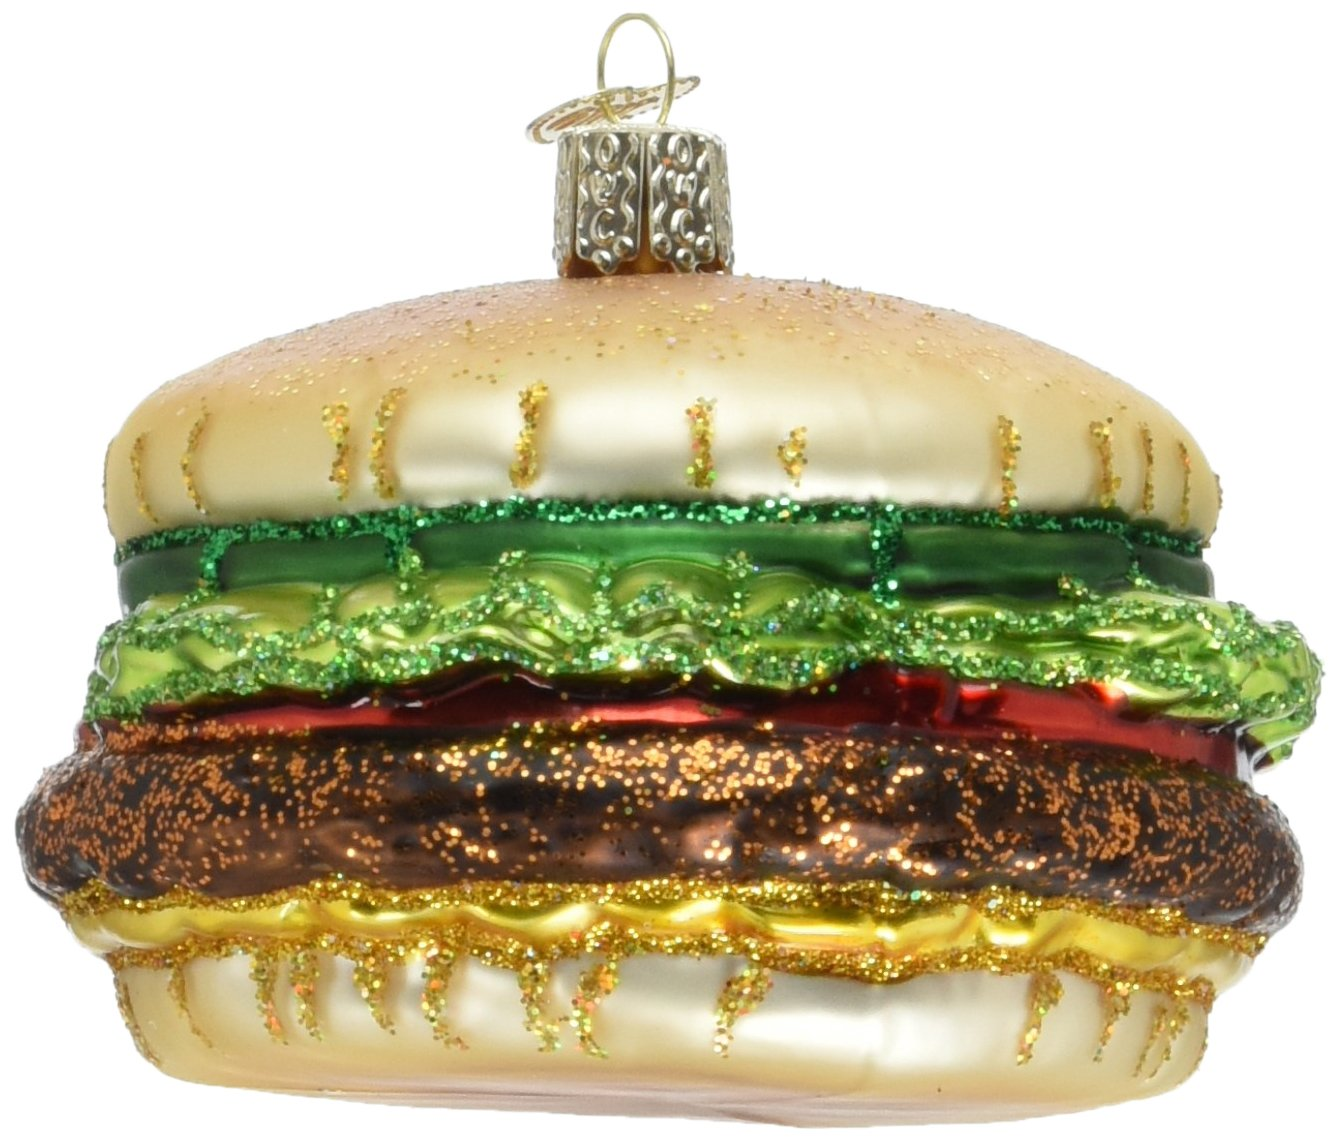 Old World Christmas Ornaments: Cheeseburger Glass Blown Ornaments for Christmas Tree (32065)